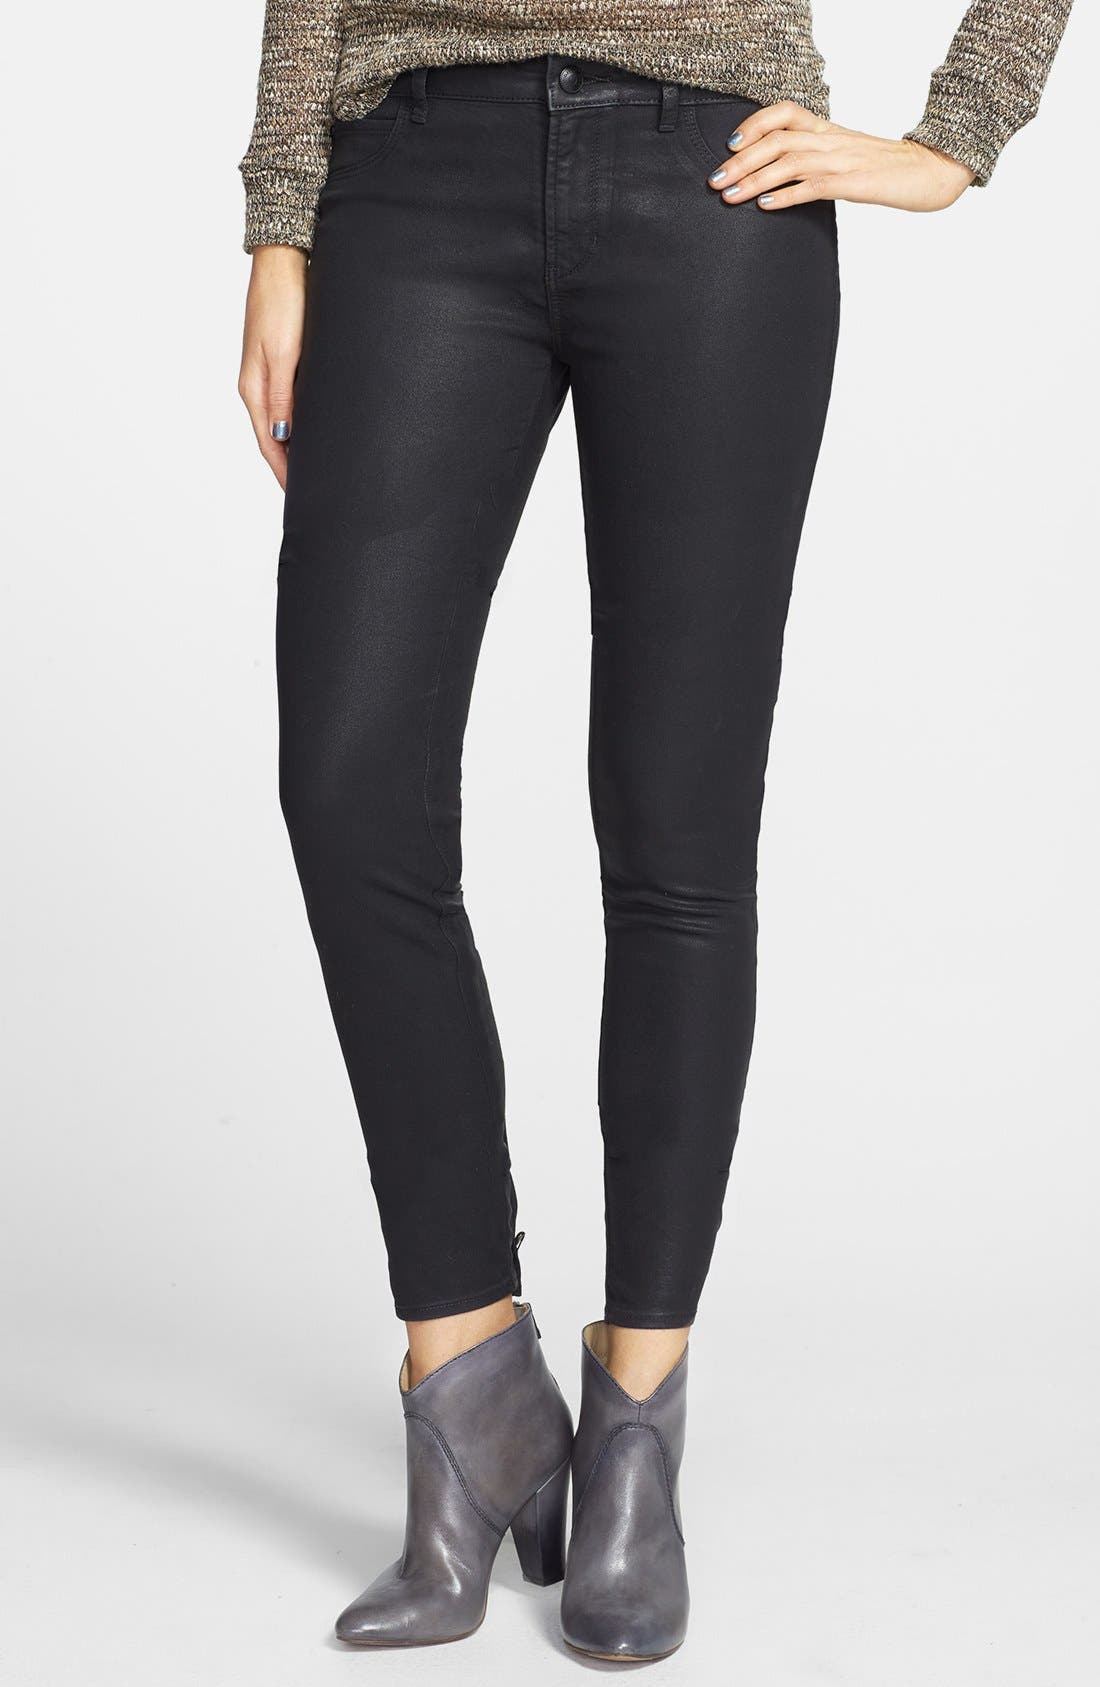 Alternate Image 1 Selected - Articles of Society 'Mya' Coated Skinny Jeans (Moto)